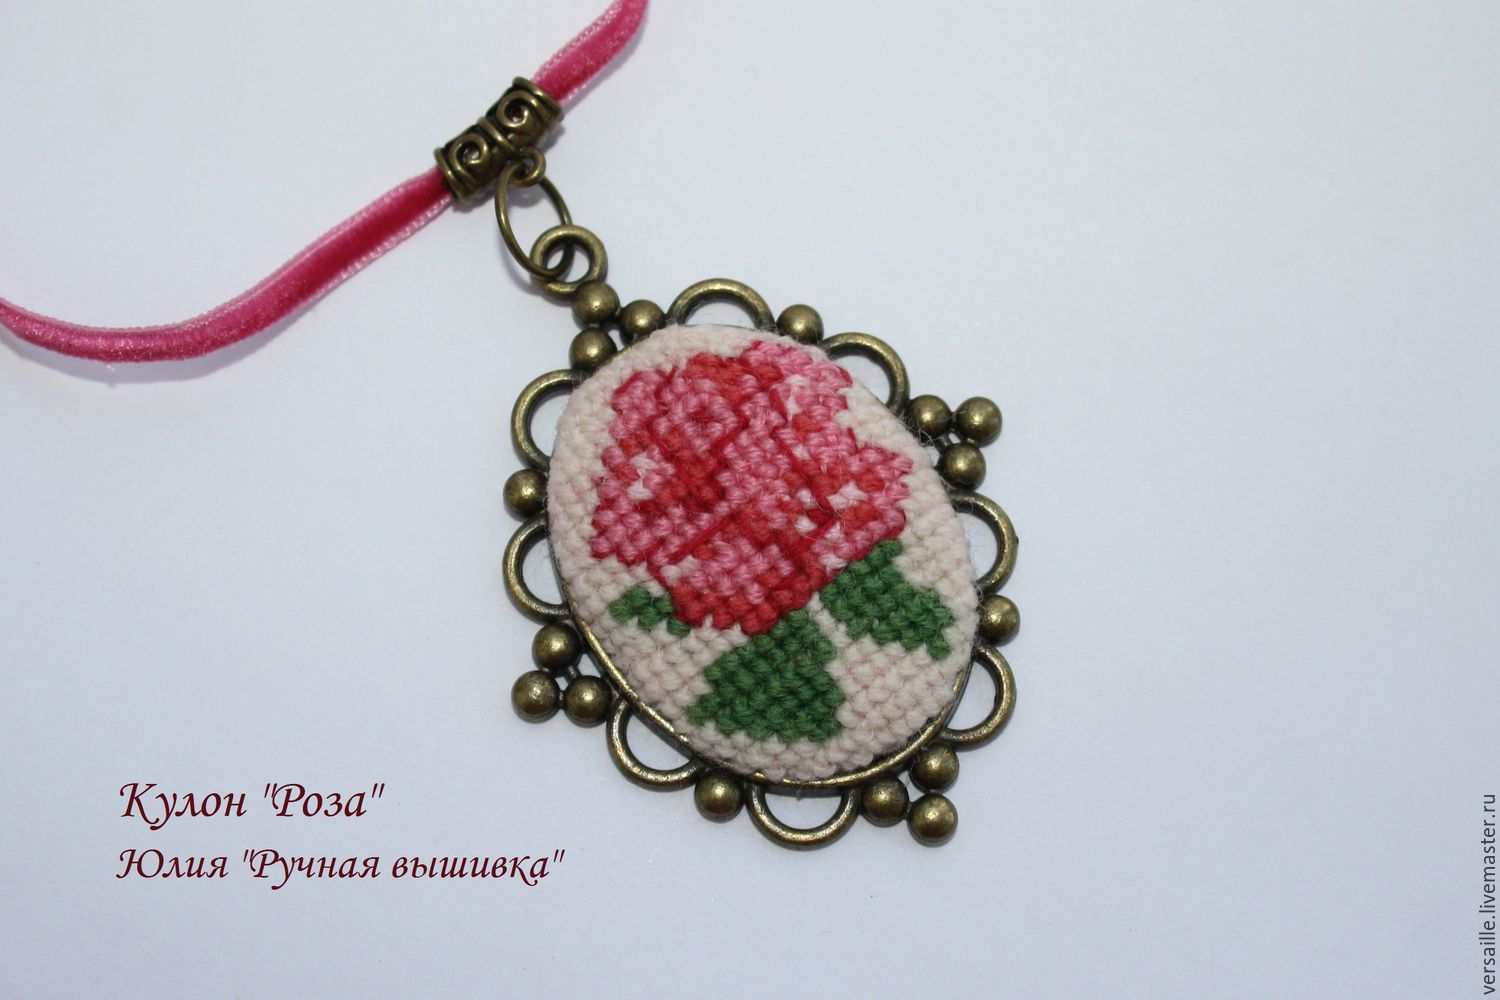 pendant, necklace, pendant with rose, embroidery rose, embroidery jewelry, jewelry with a rose, big rose